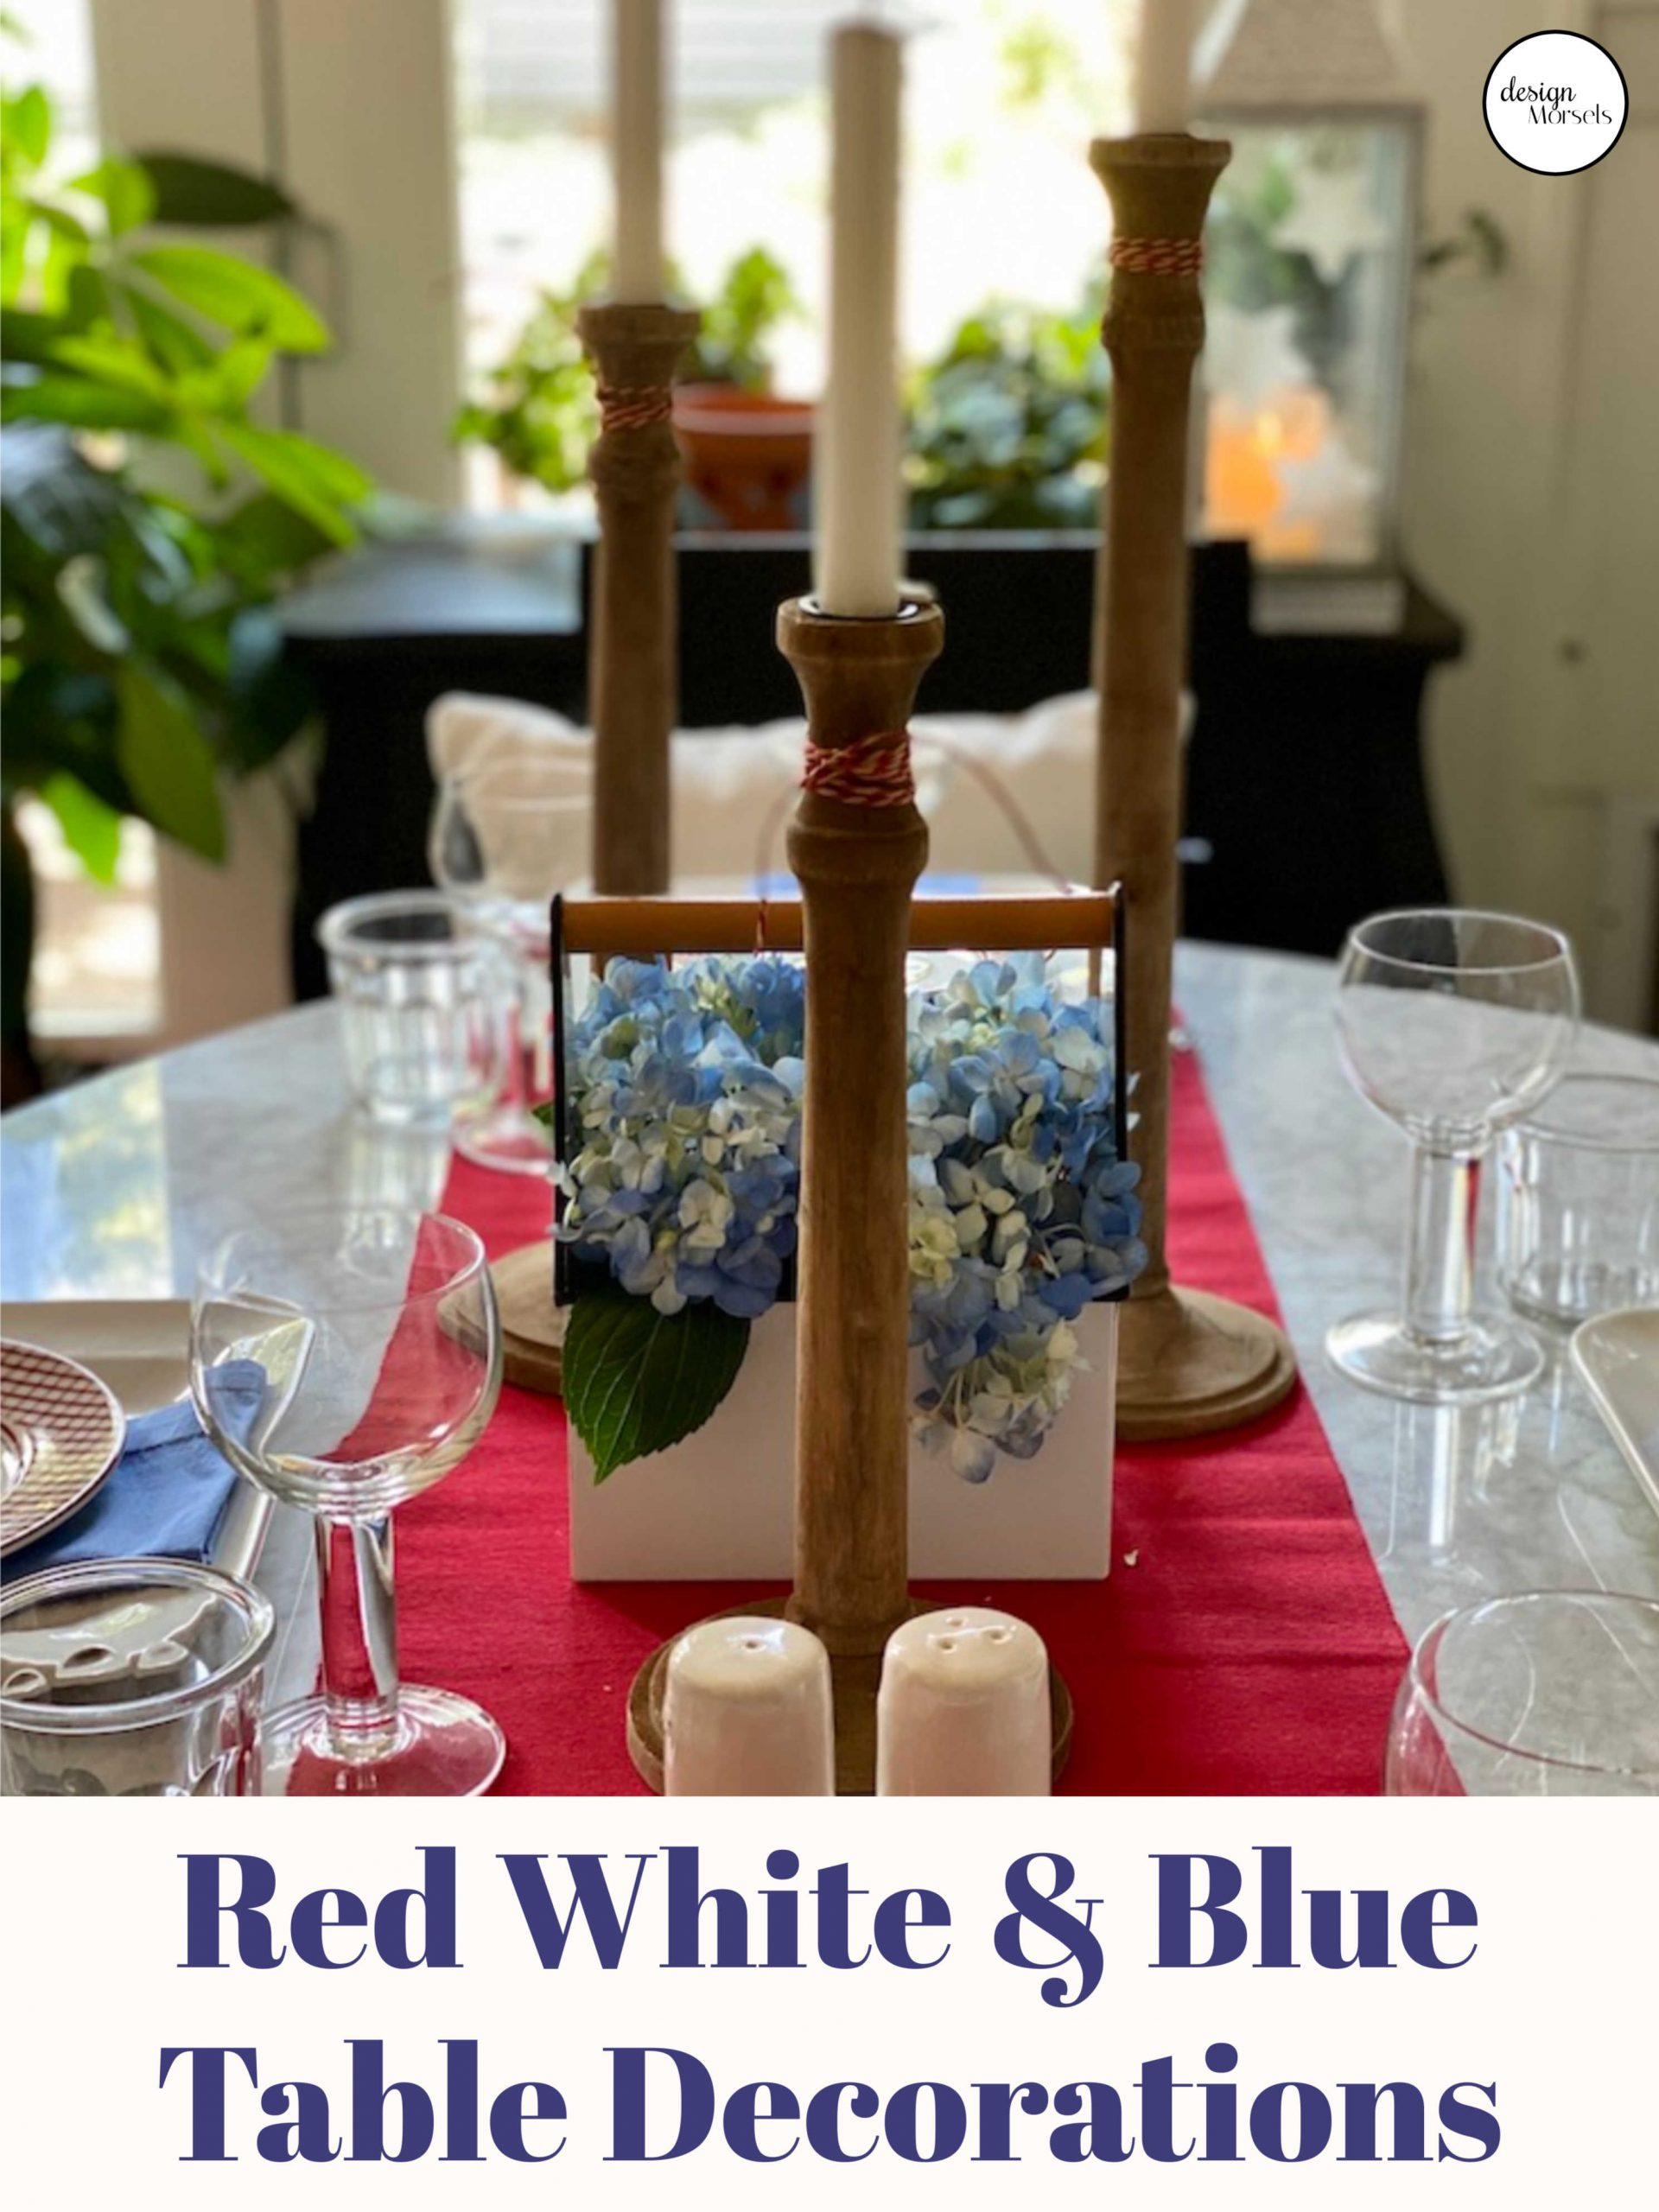 Patriotic table decorations